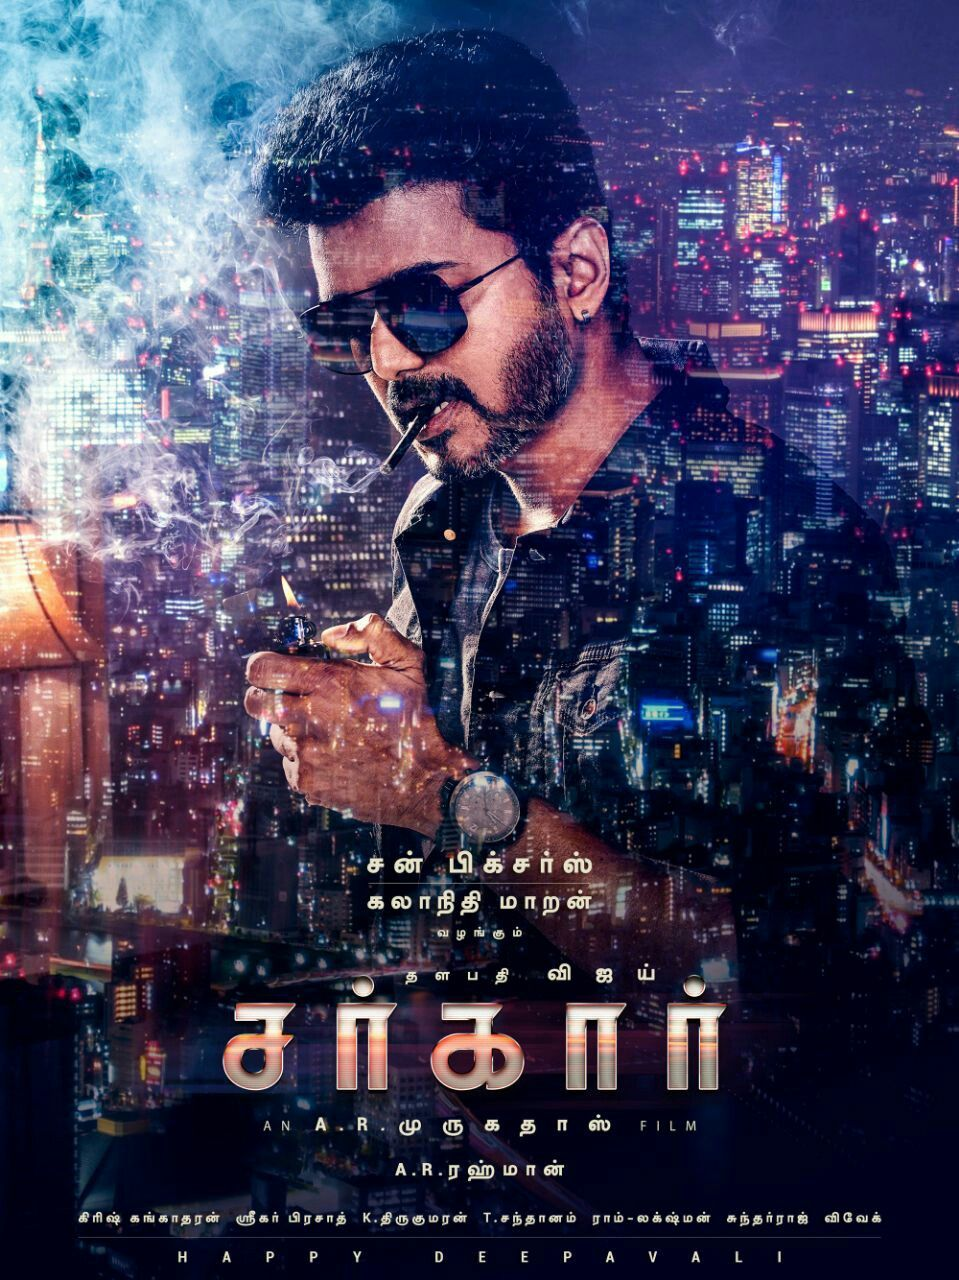 Sarkar First Look Verithanam Movie Titles Download Movies Download Free Movies Online